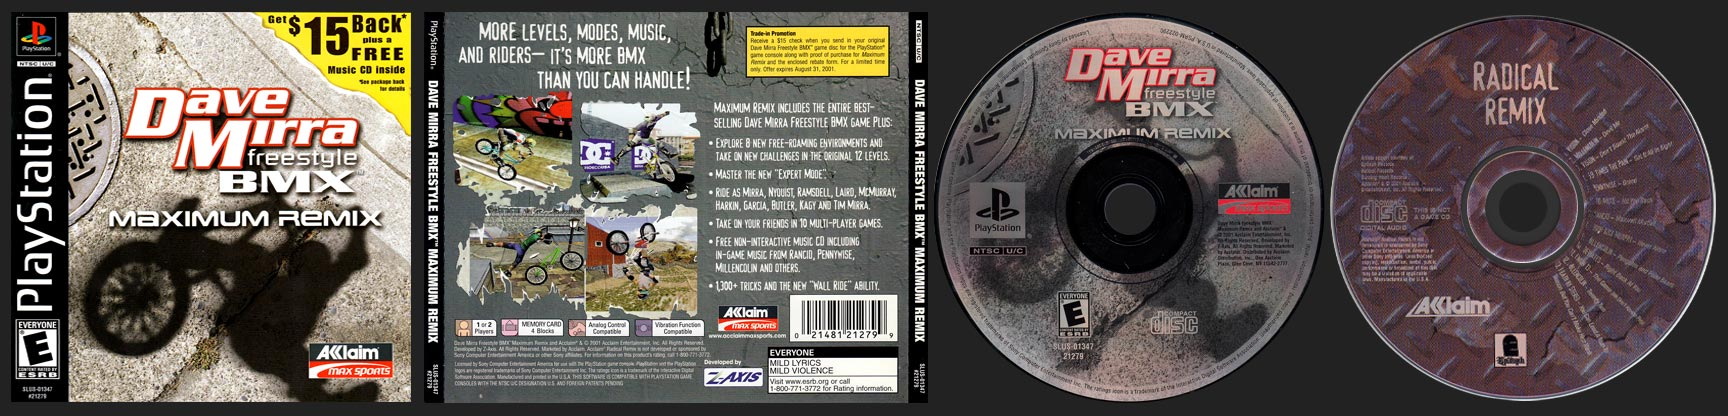 PSX PlayStation Dave Mirra Freestyle BMX Maximum Remix Black Label Retail Release with Music CD